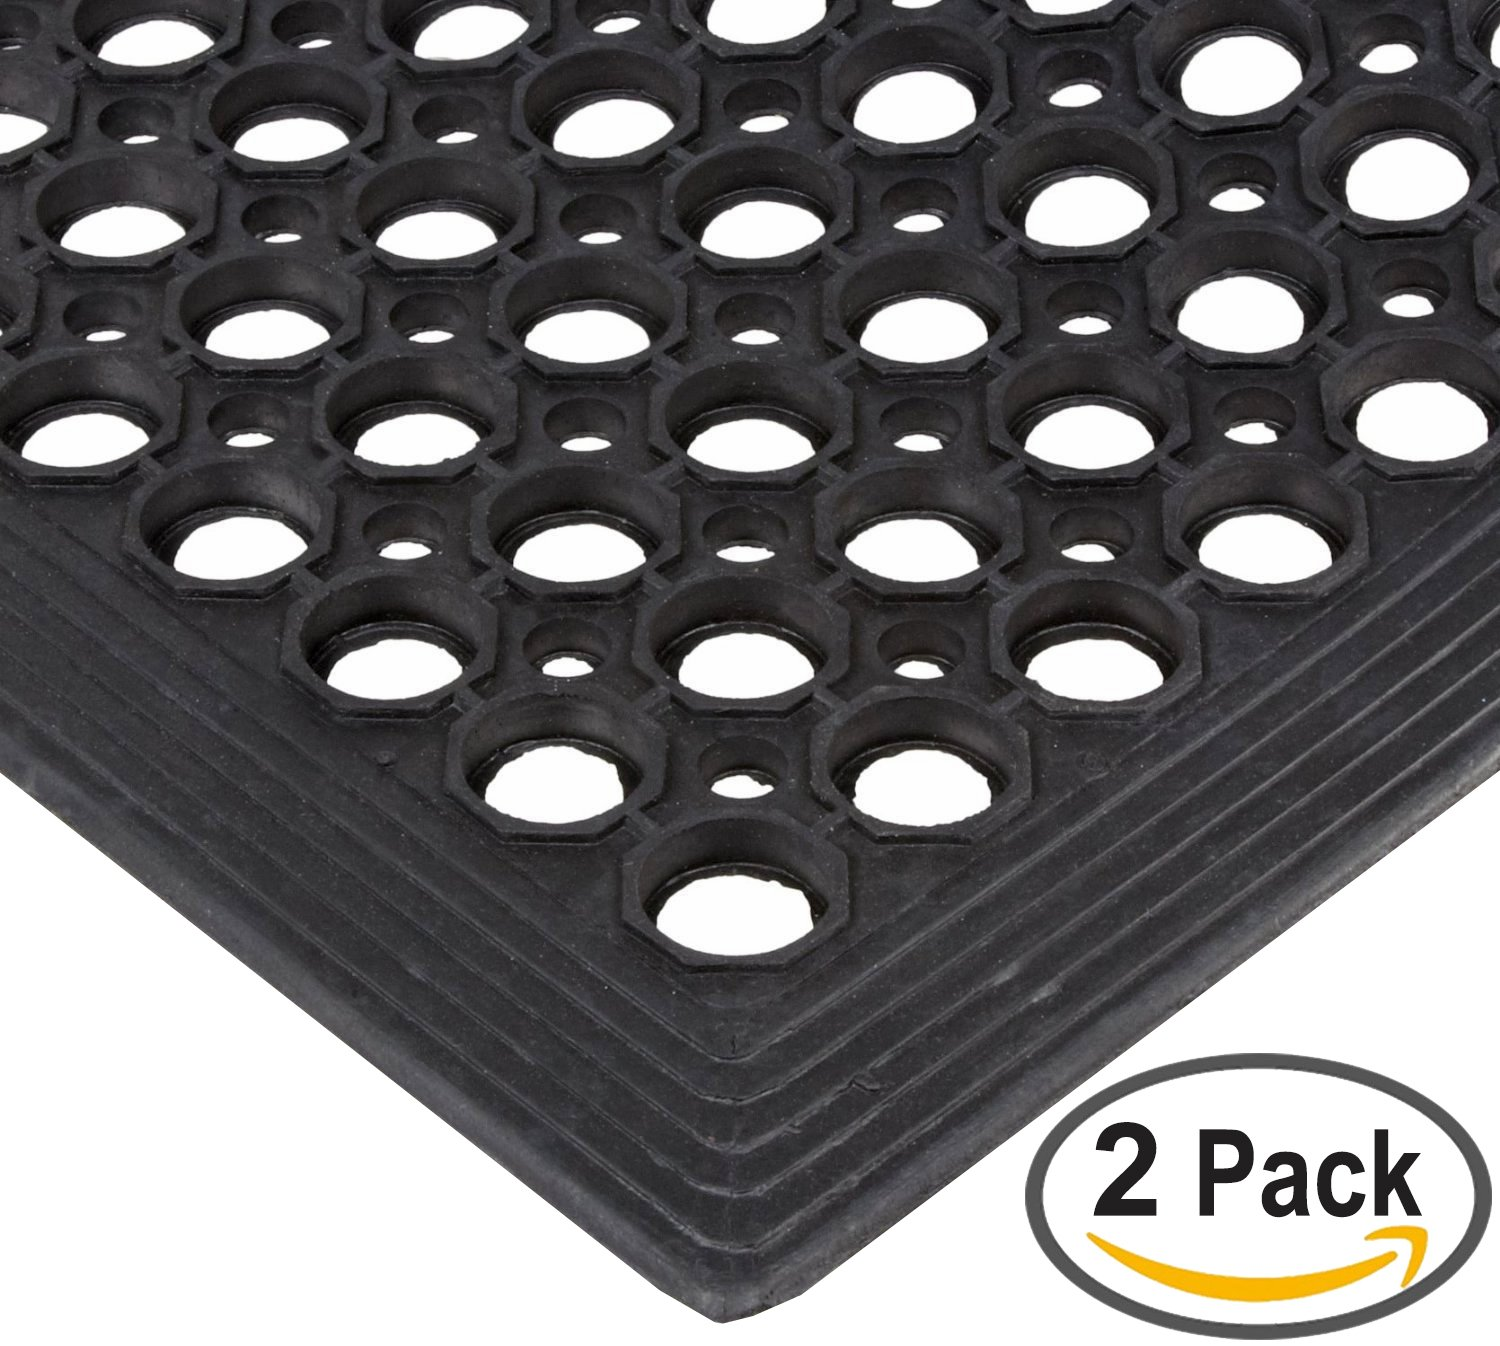 Safewalk-Light Rubber Anti-Fatigue Drainage Mat, for Wet or Dry Areas, 36'' Width x 60'' Length x 1/2'' Thickness, Black (Pack of 2)